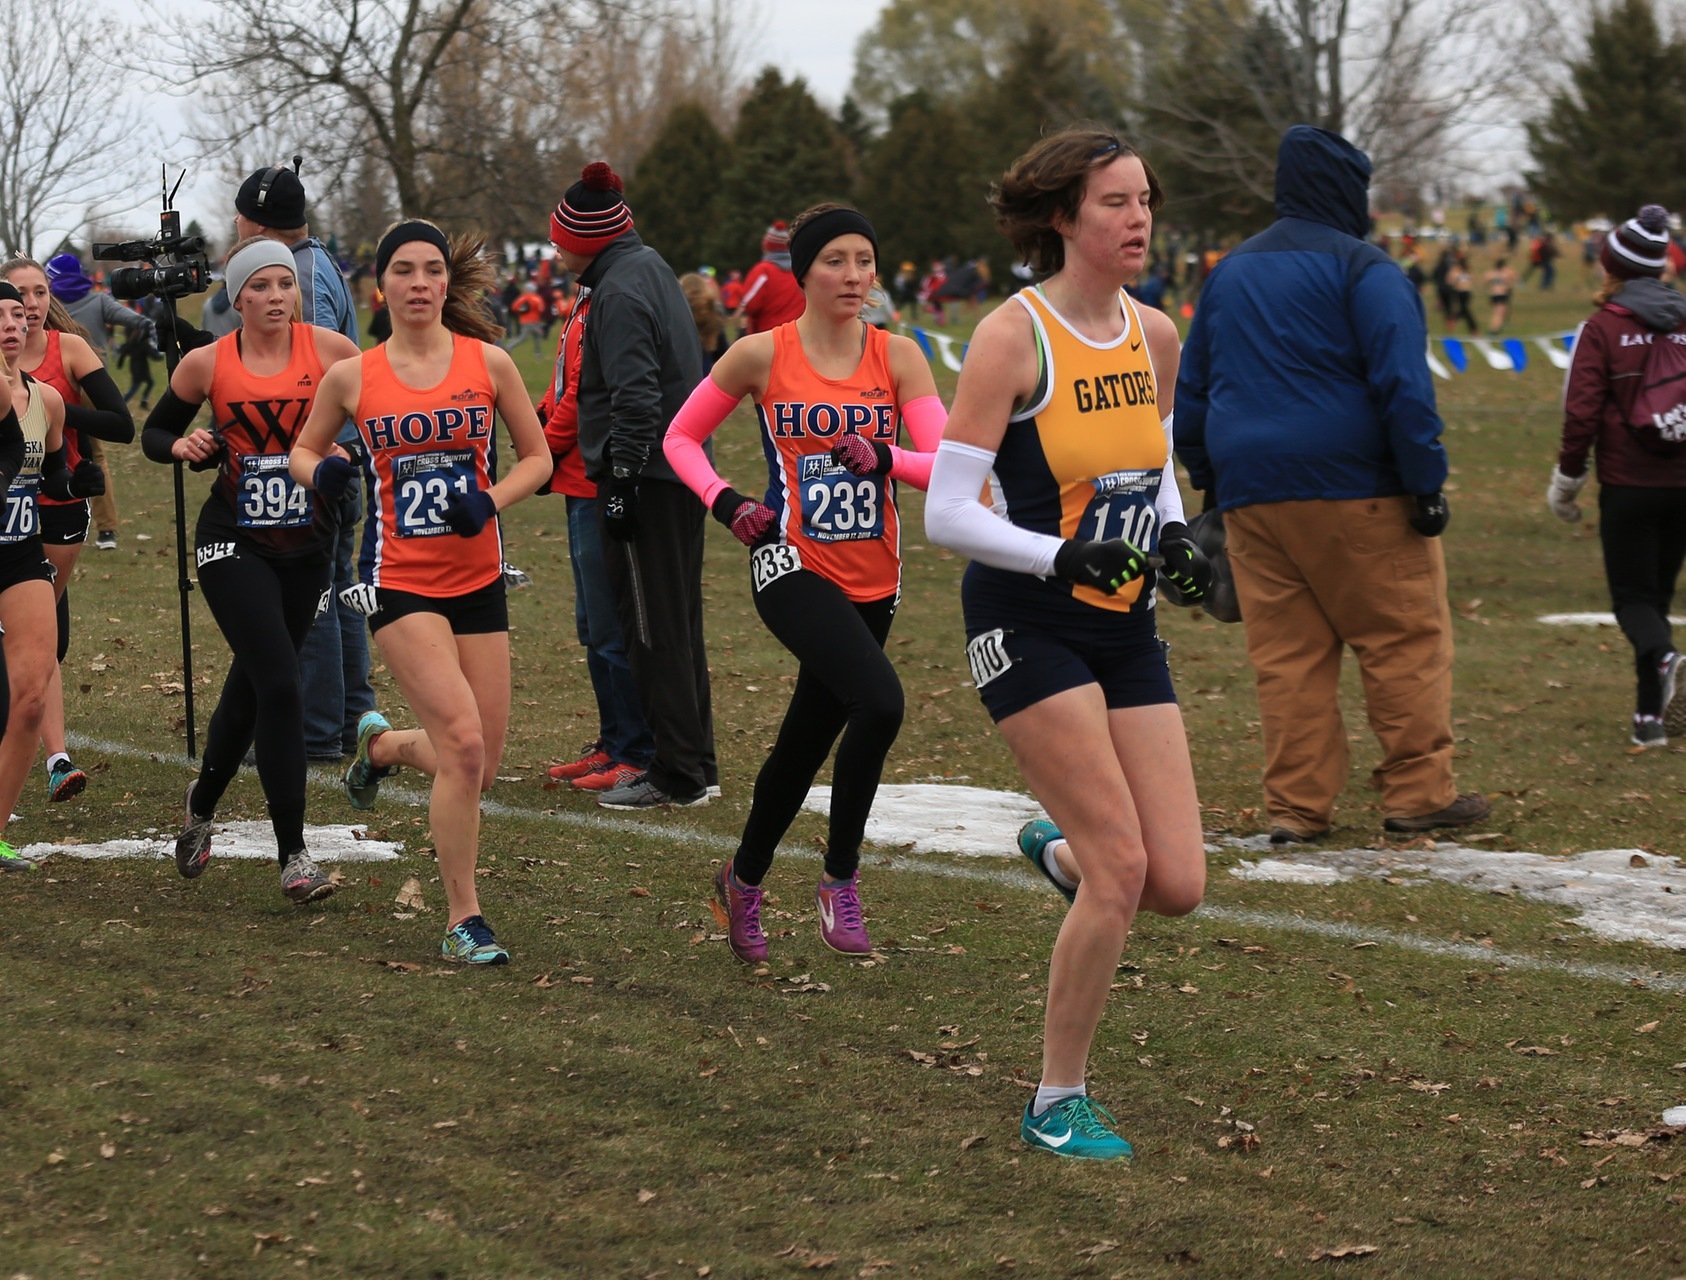 Two Hope runners race at nationals